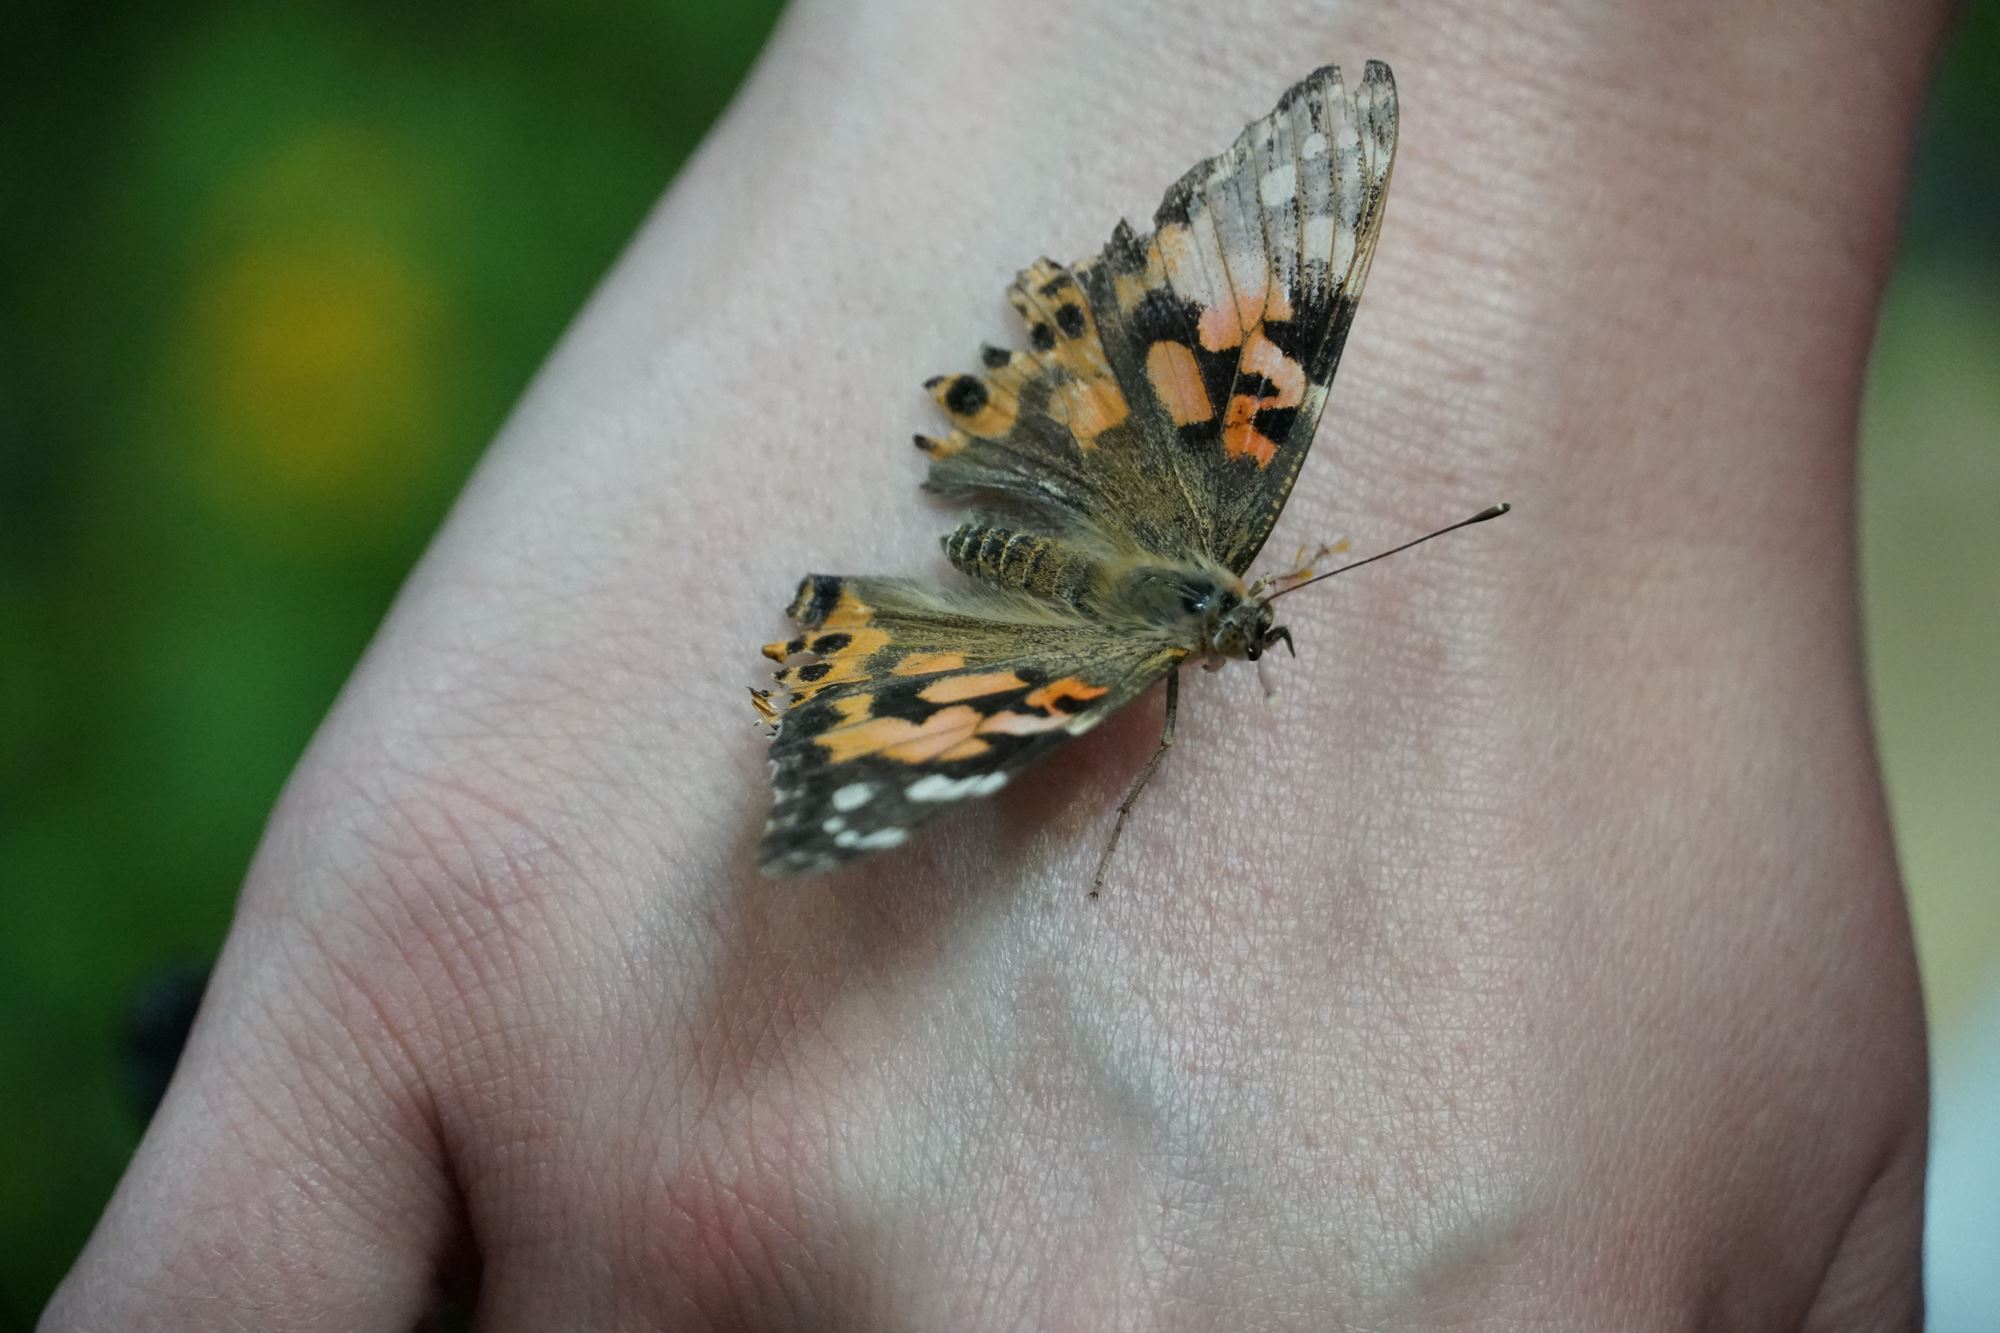 A butterfly that landed on someones hand